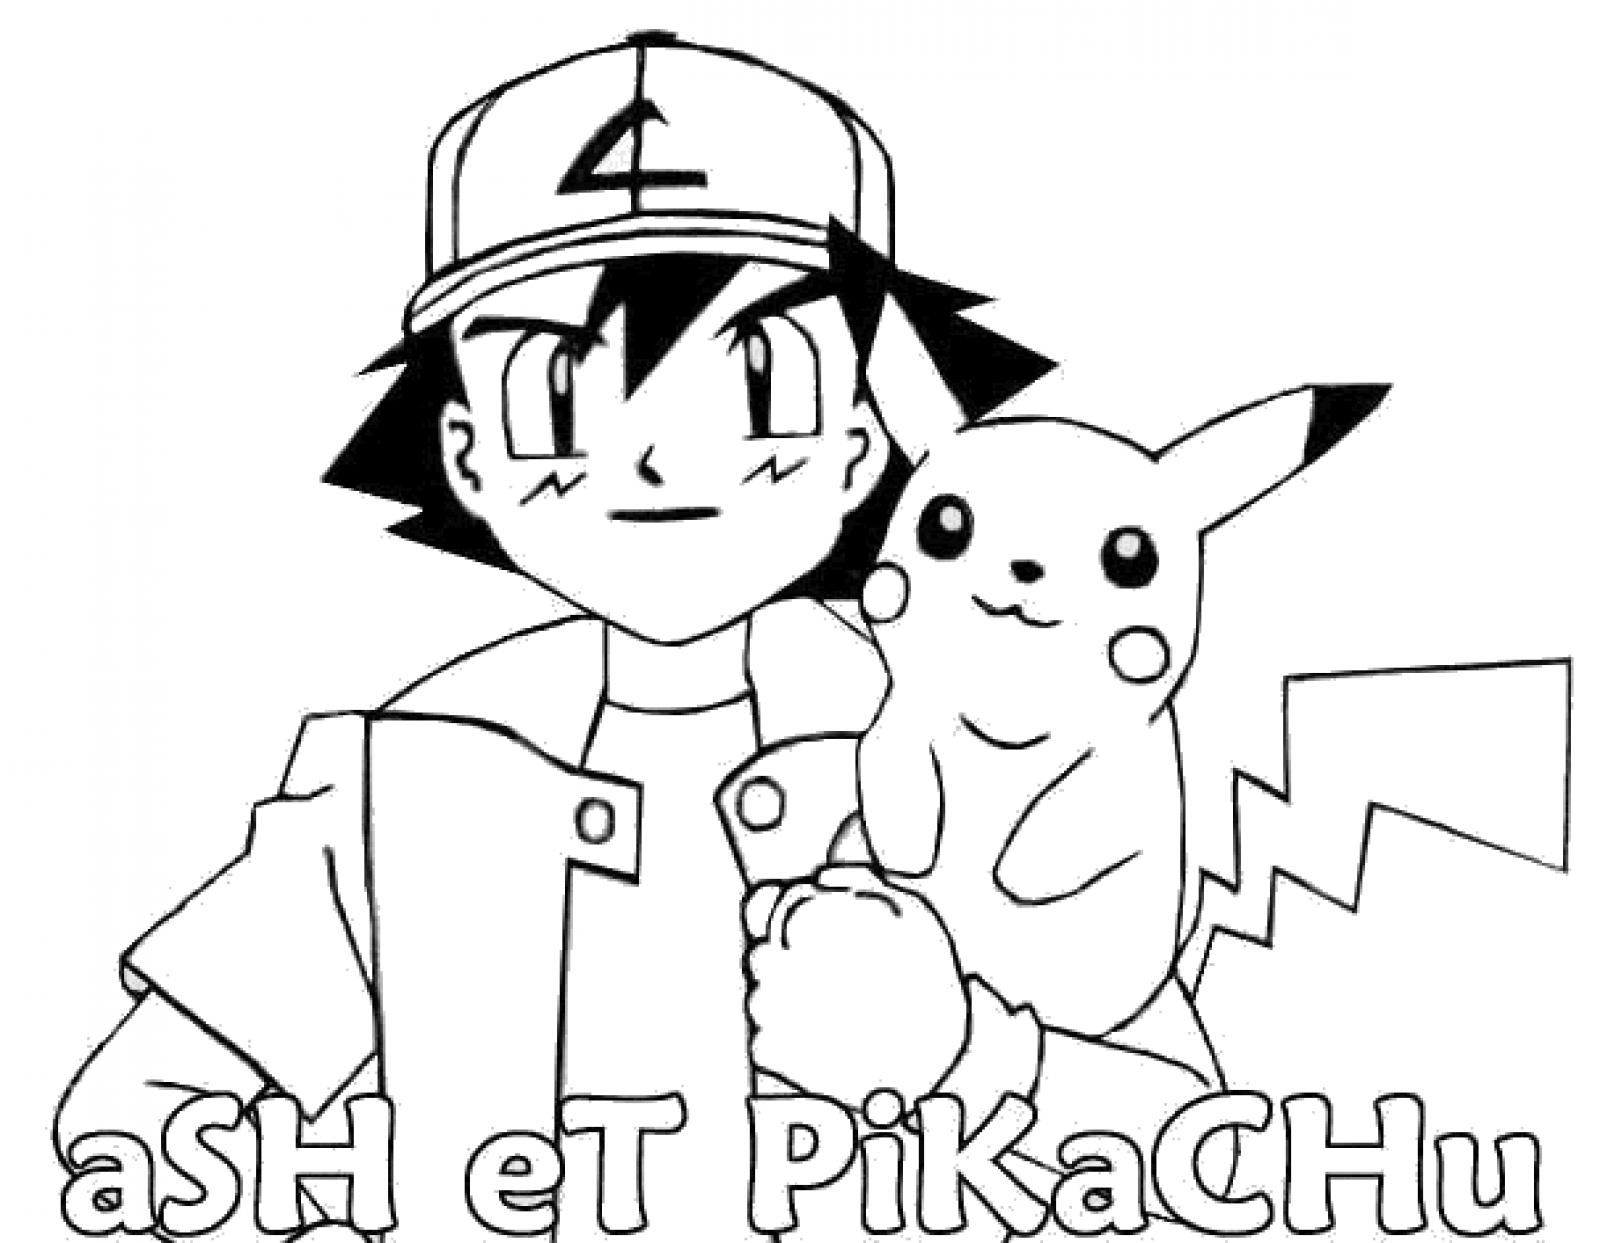 Pikachu coloring pages free printable - Ash And Pikachu Coloring Page